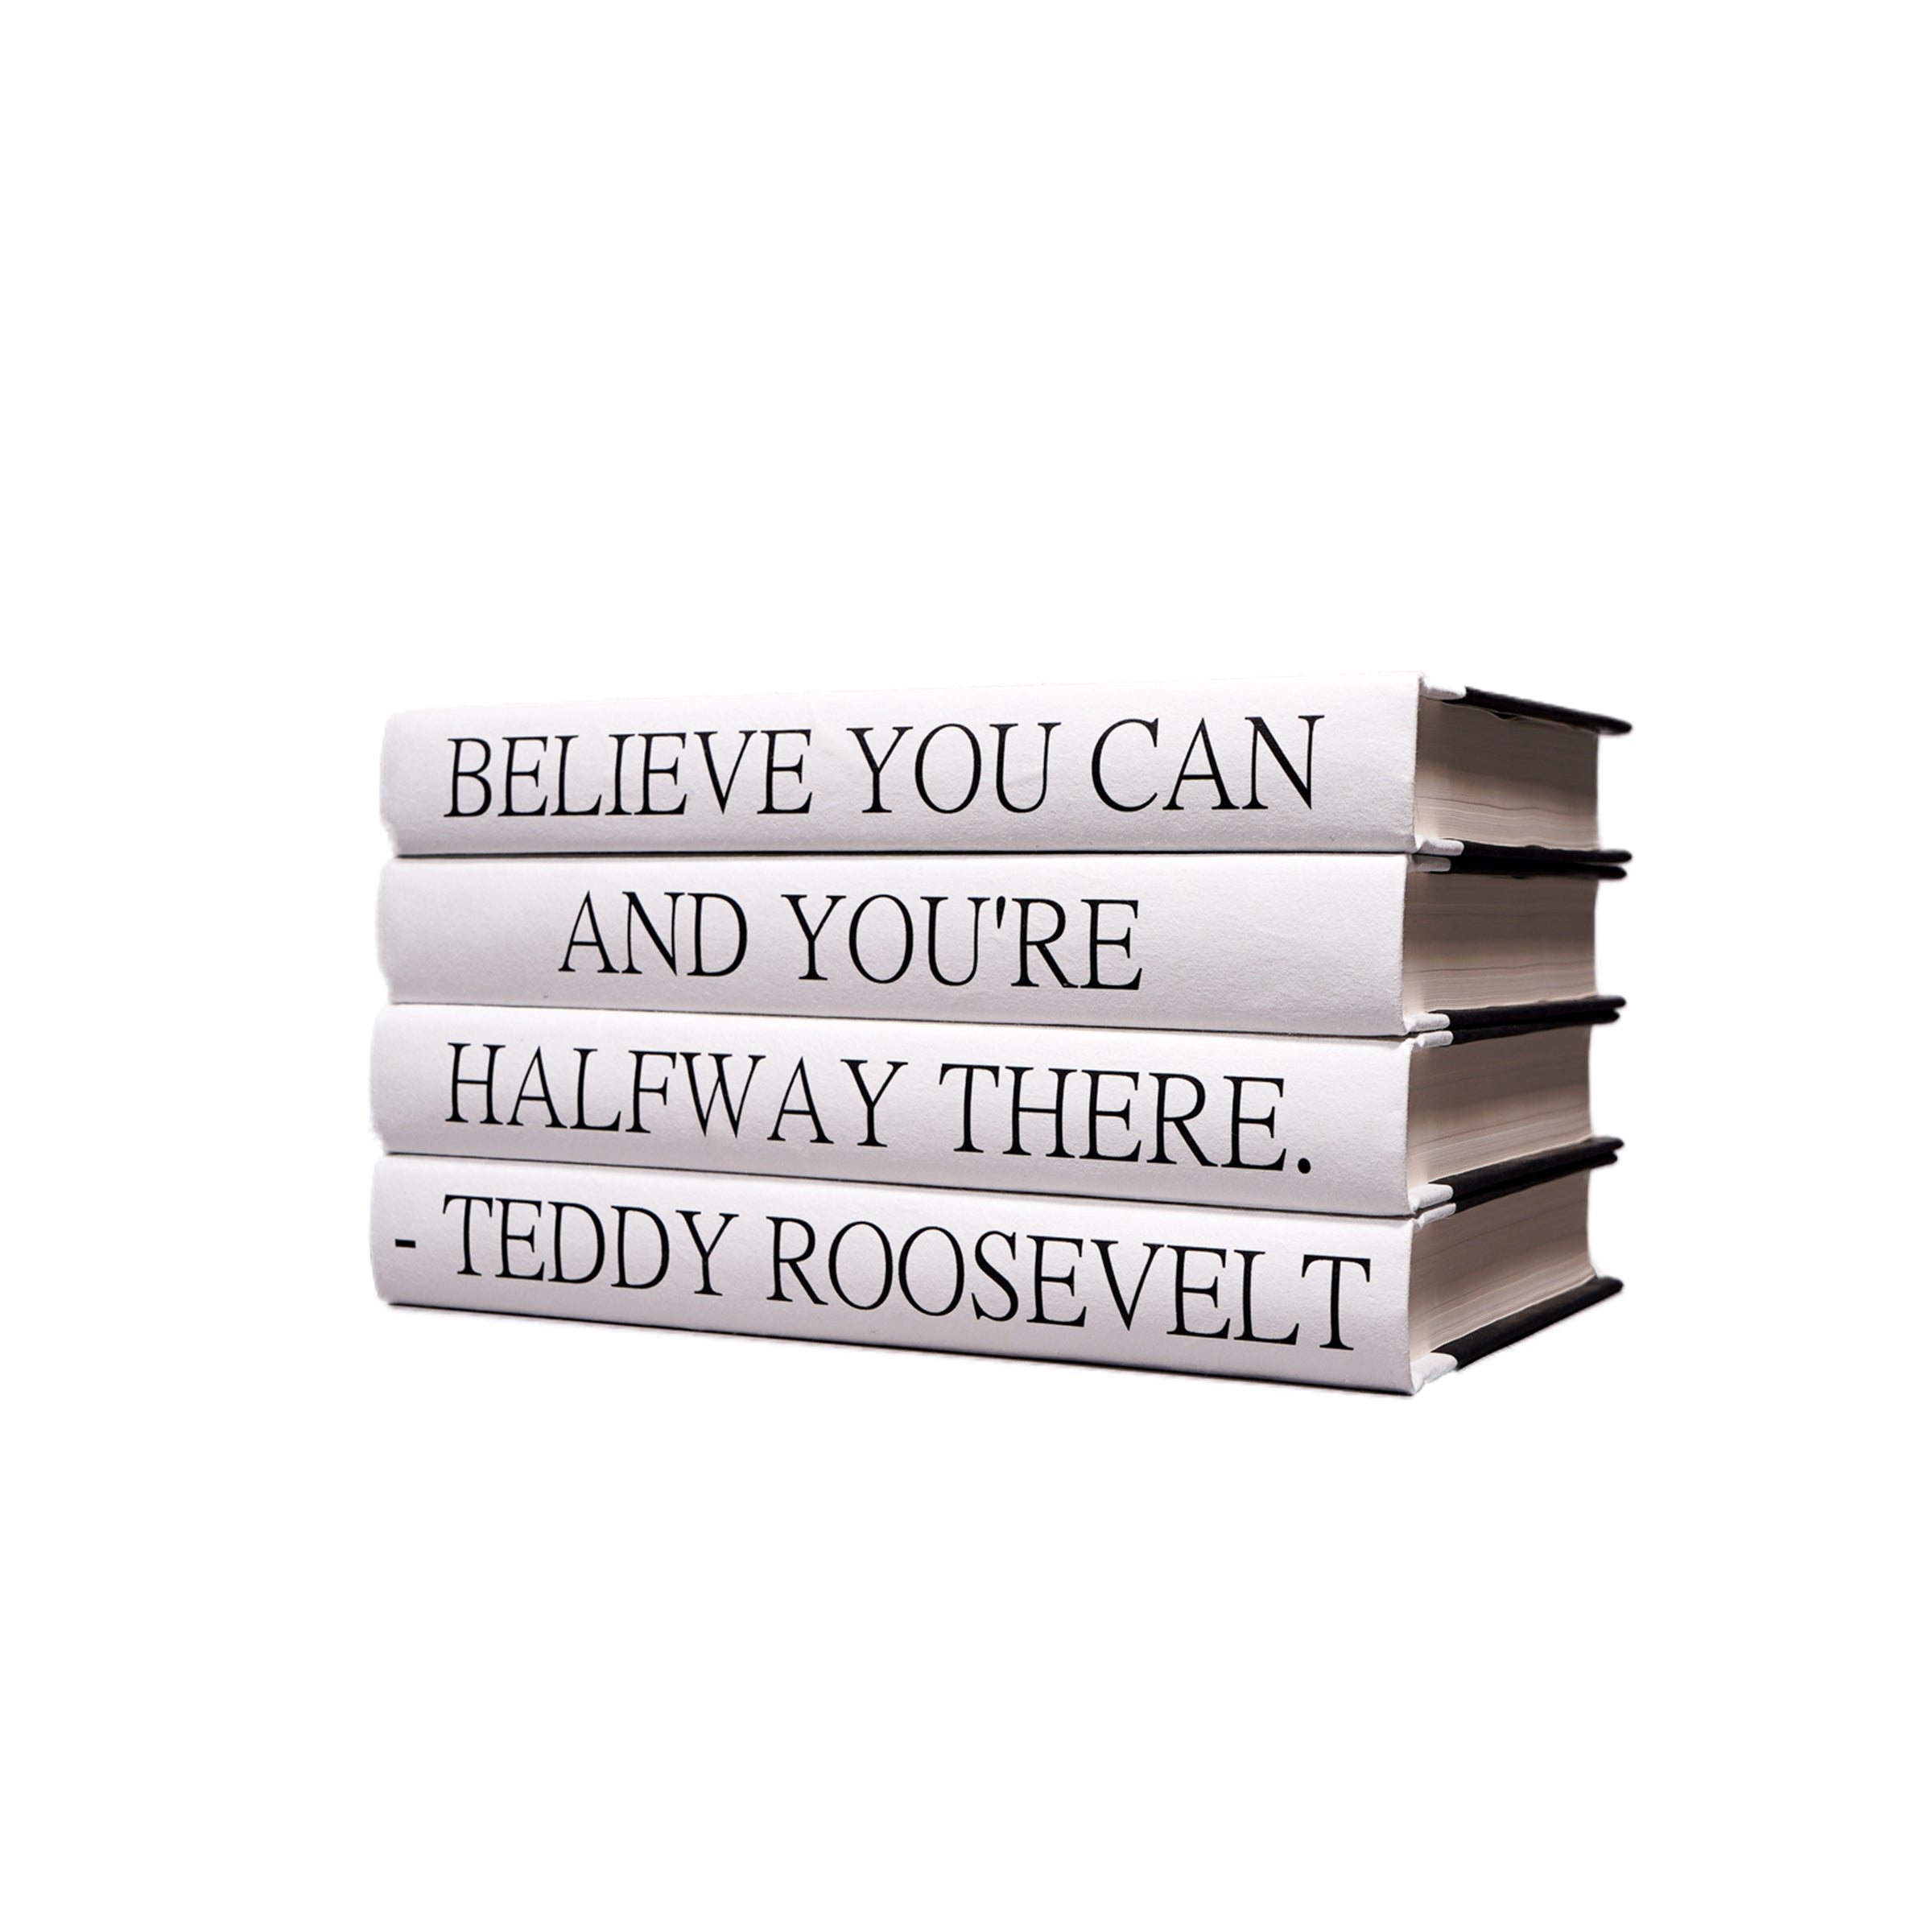 Teddy Roosevelt Quote Book Stack